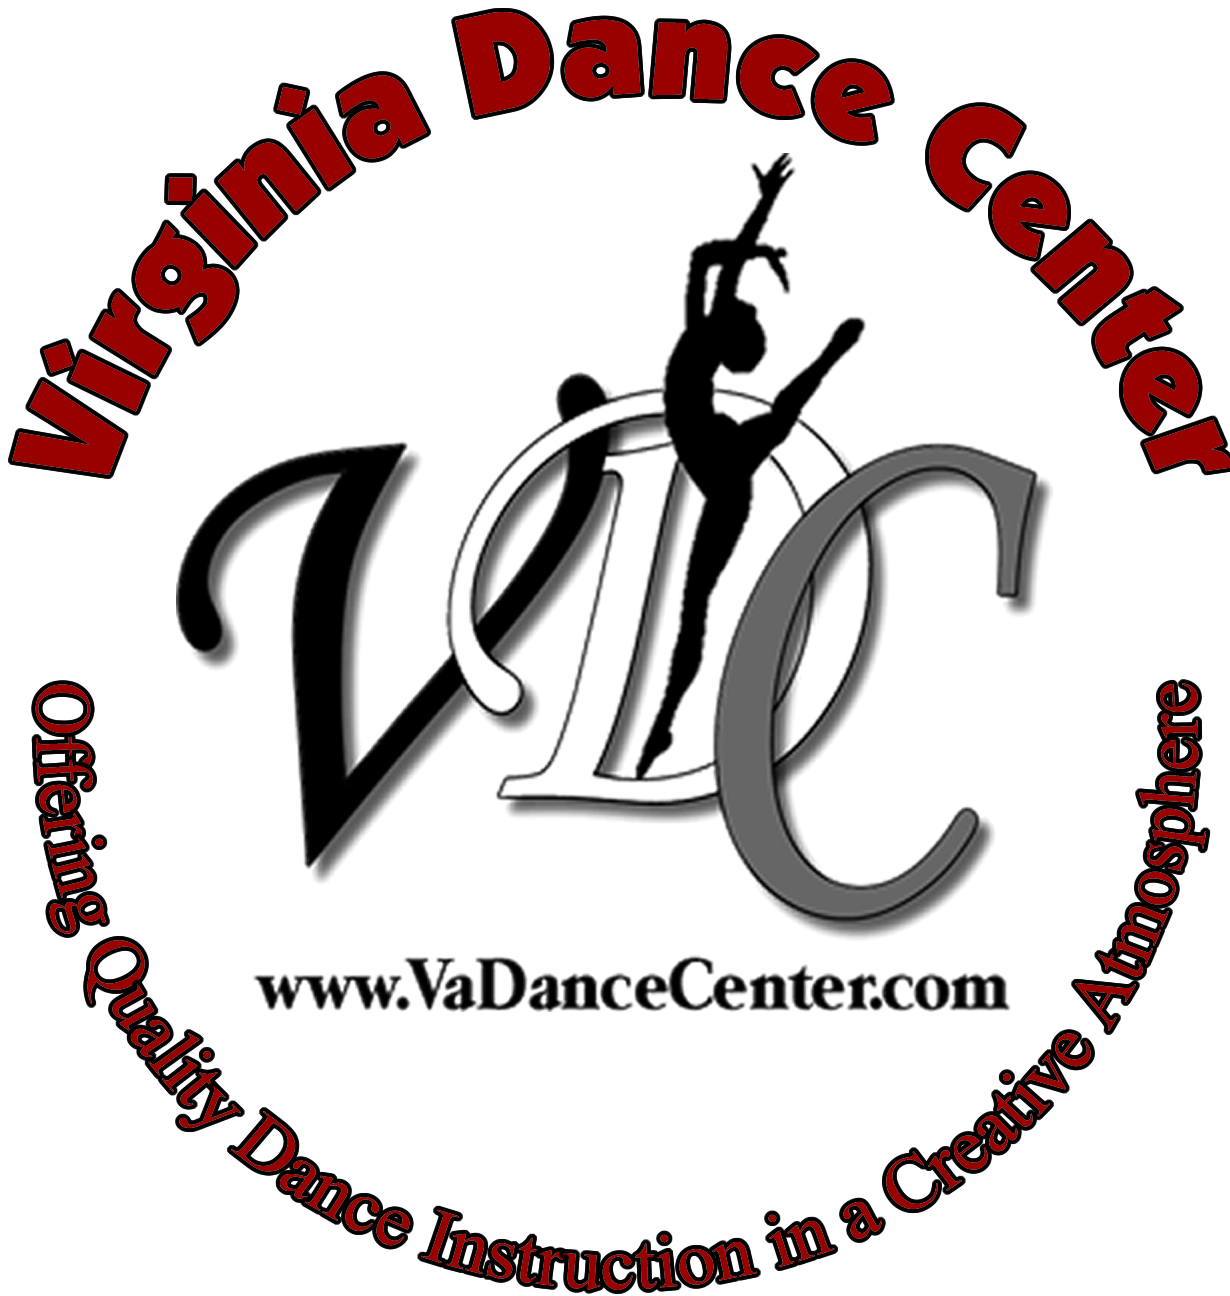 The Virginia Dance Center; Manassas, VA